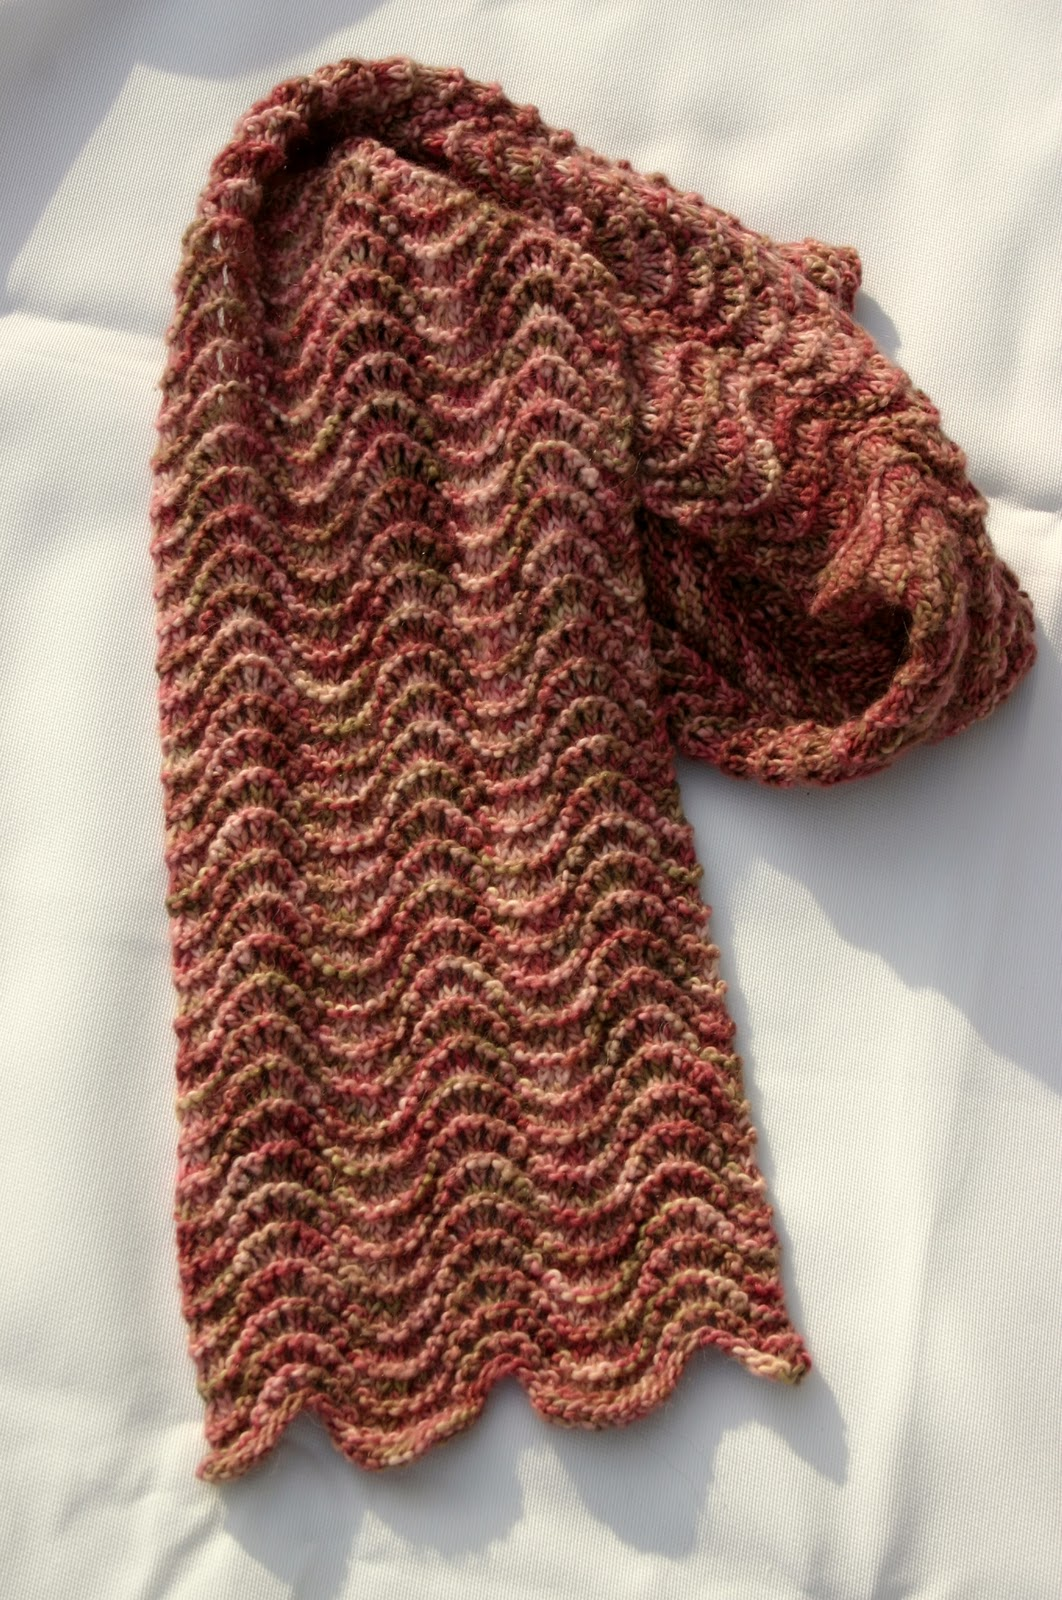 The Fuzzy Square: Scarf Waves, Old Shale Pink Handknit Scarf